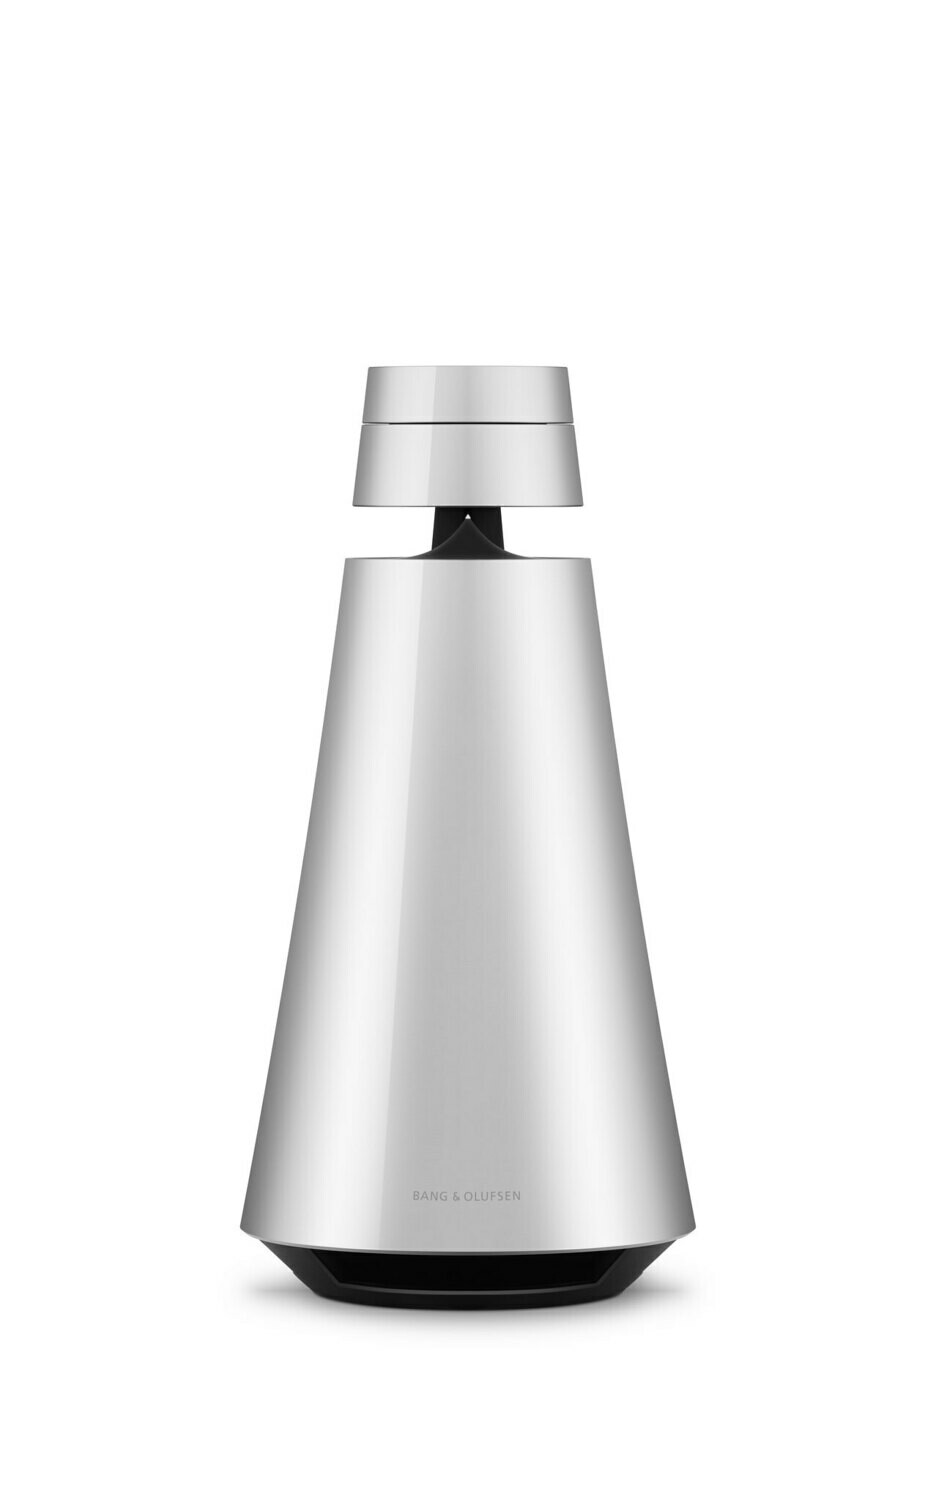 Beosound 1 2nd Generation mit Google Assistant, Natural